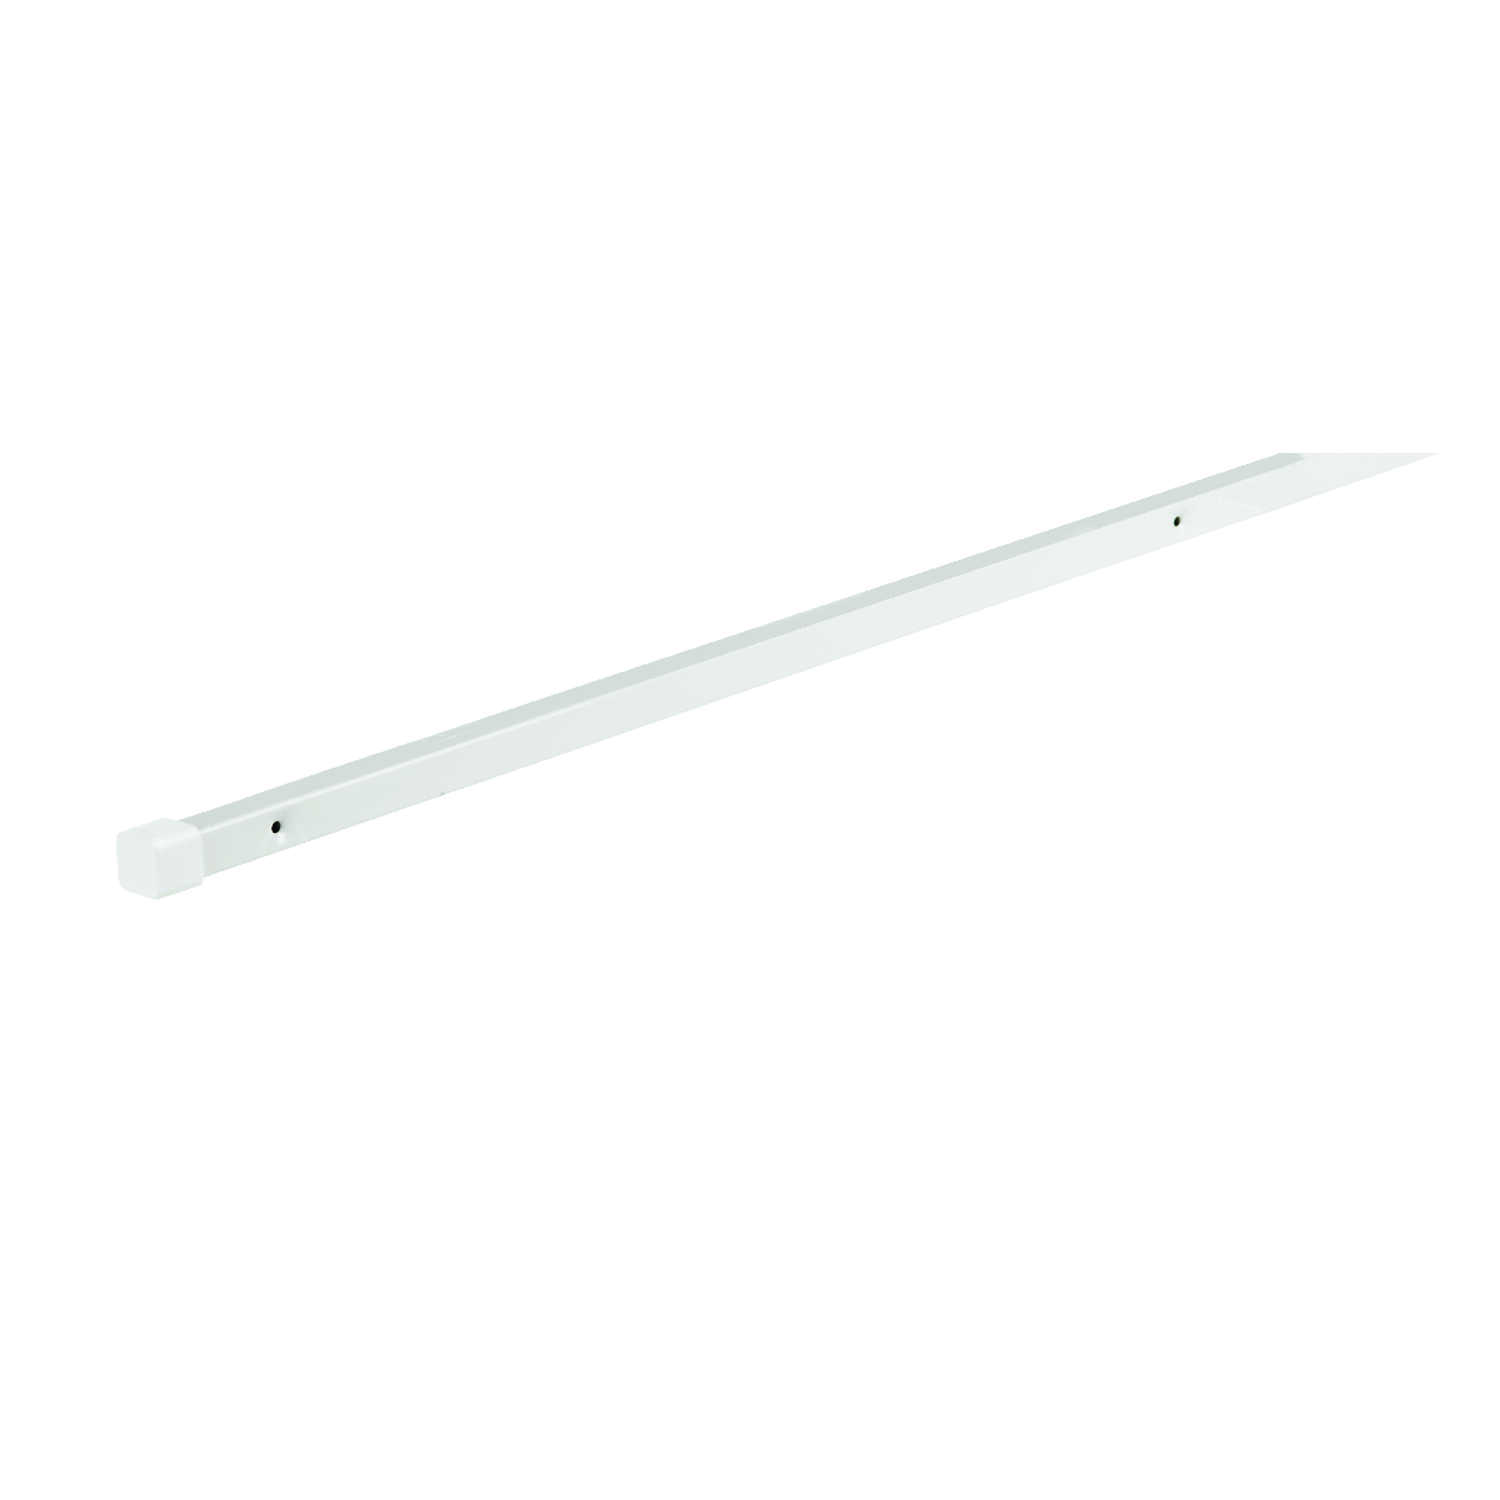 Rubbermaid  84 in. H x 1/2 in. W x 1/2 in. L Steel  Shelf Support Pole  1 each